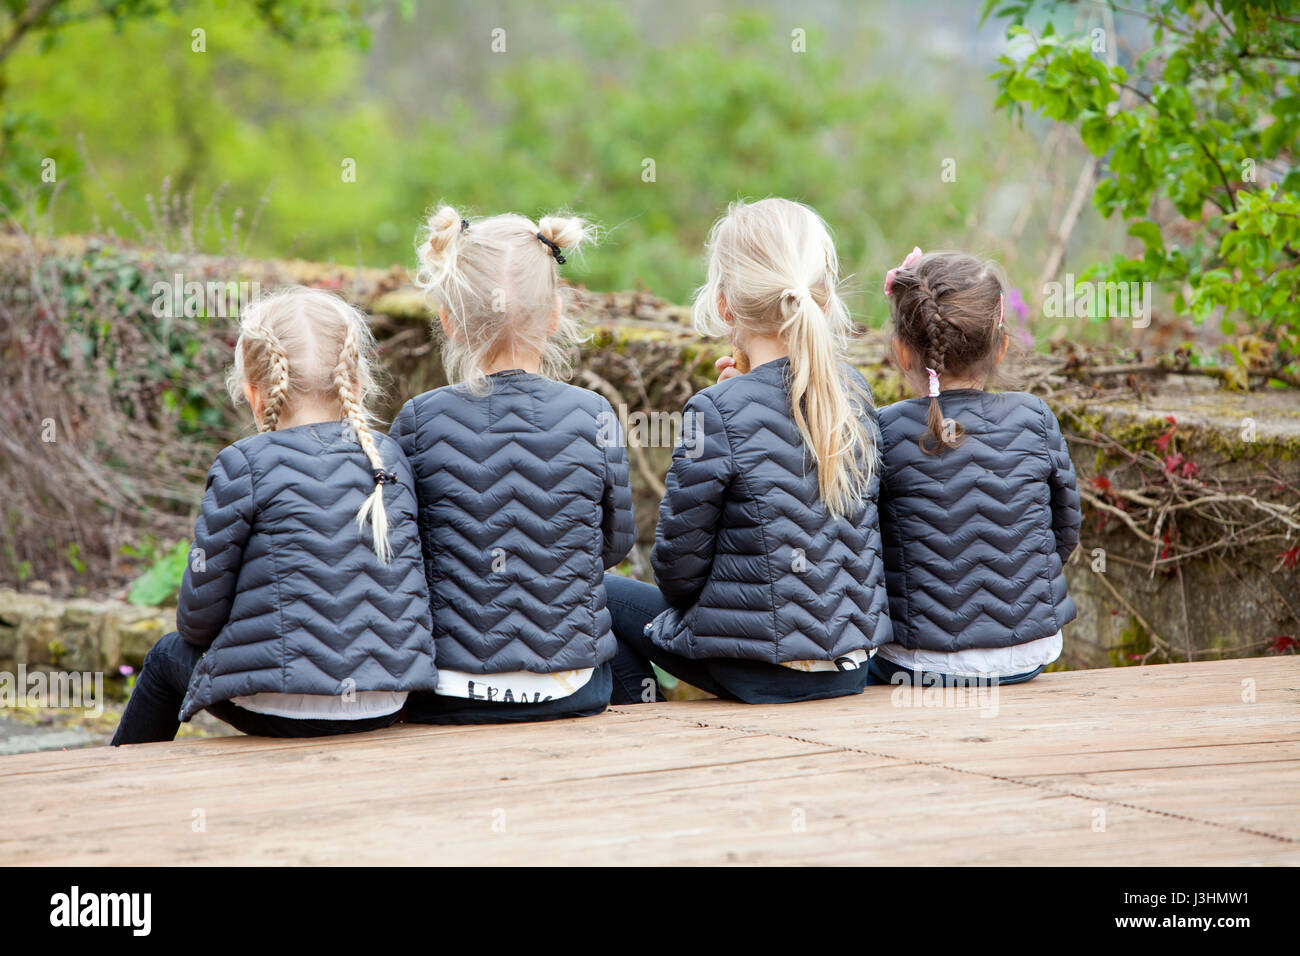 Four girls with equal clothing and hair-style, Germany, Europa - Stock Image